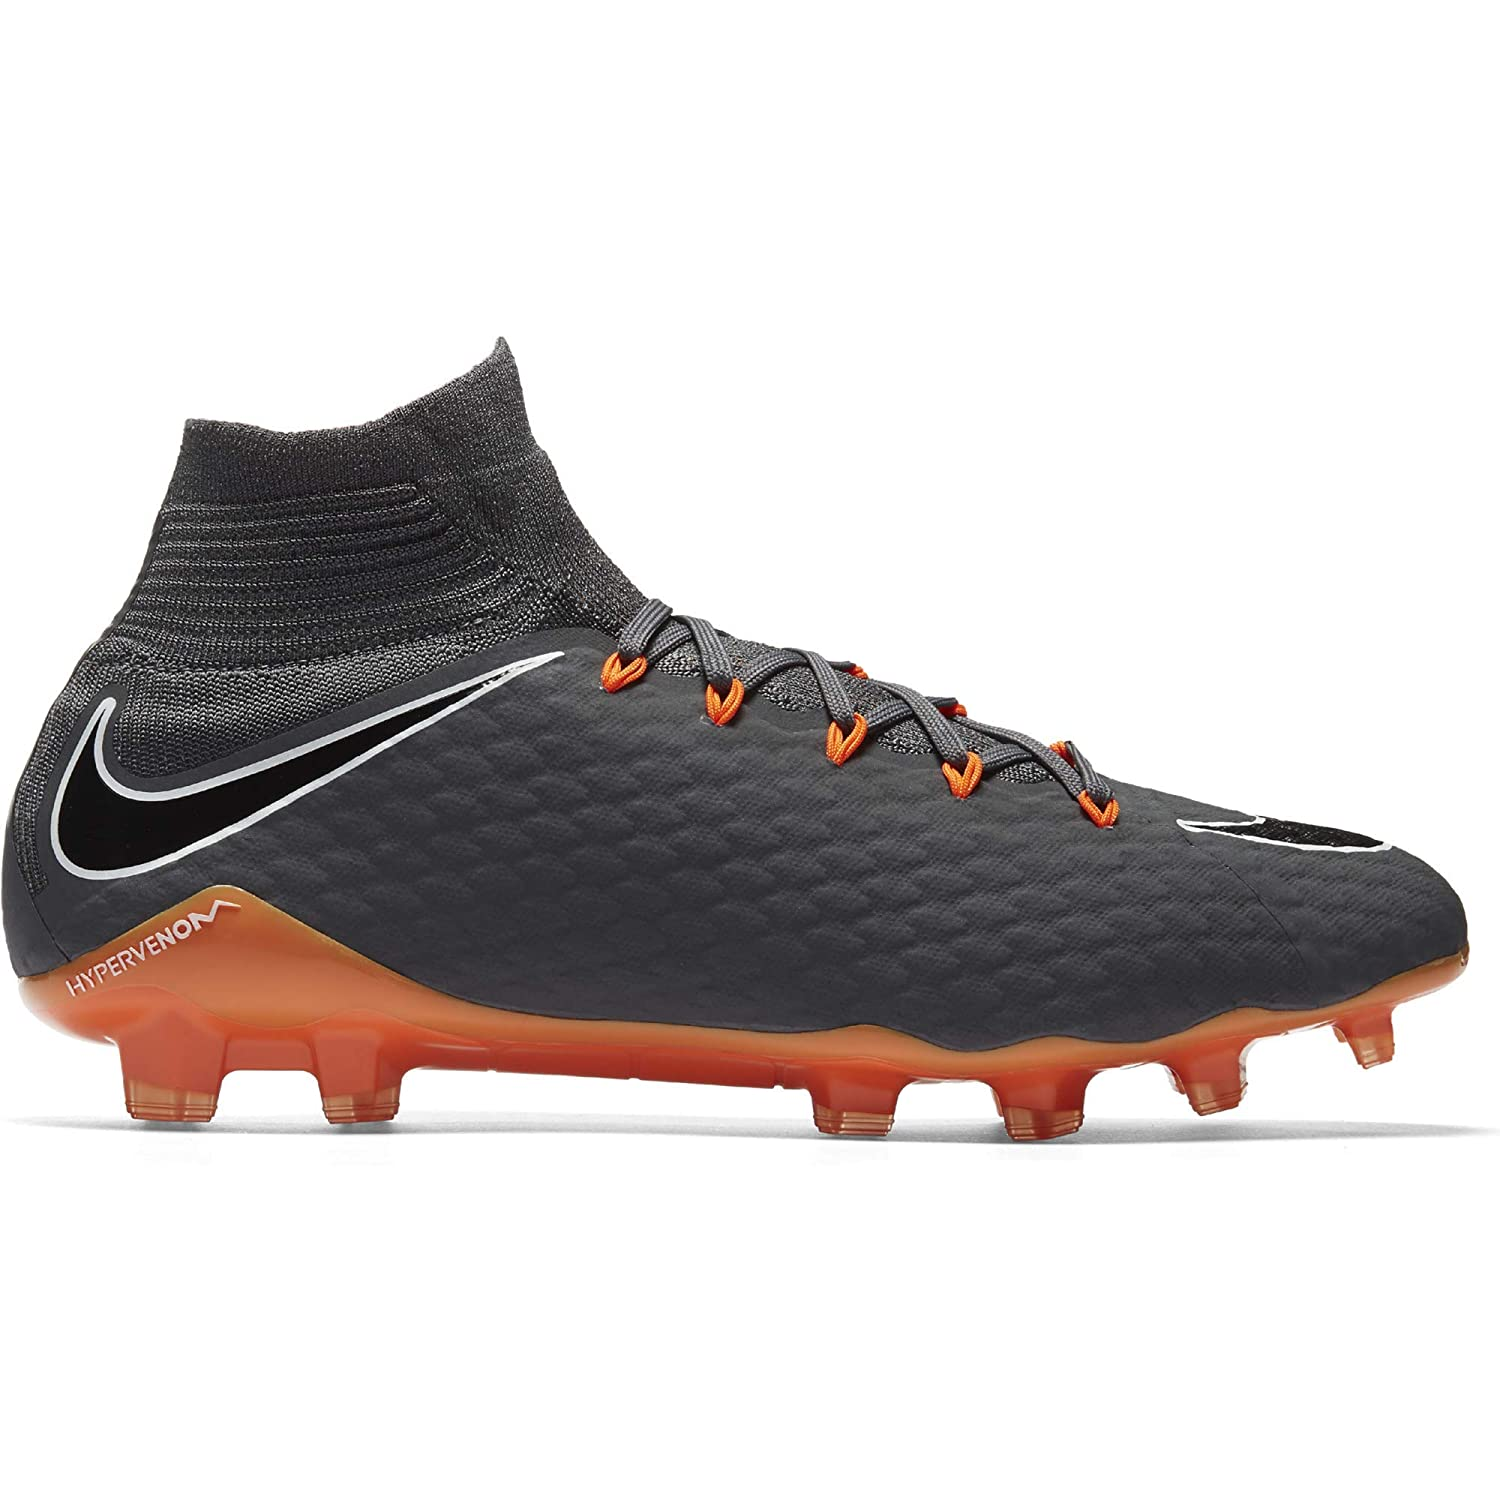 eb39527fc657f Amazon.com | Nike Hypervenom Phantom 3 Pro DF FG Cleats [Dark Grey] (10.5)  | Soccer